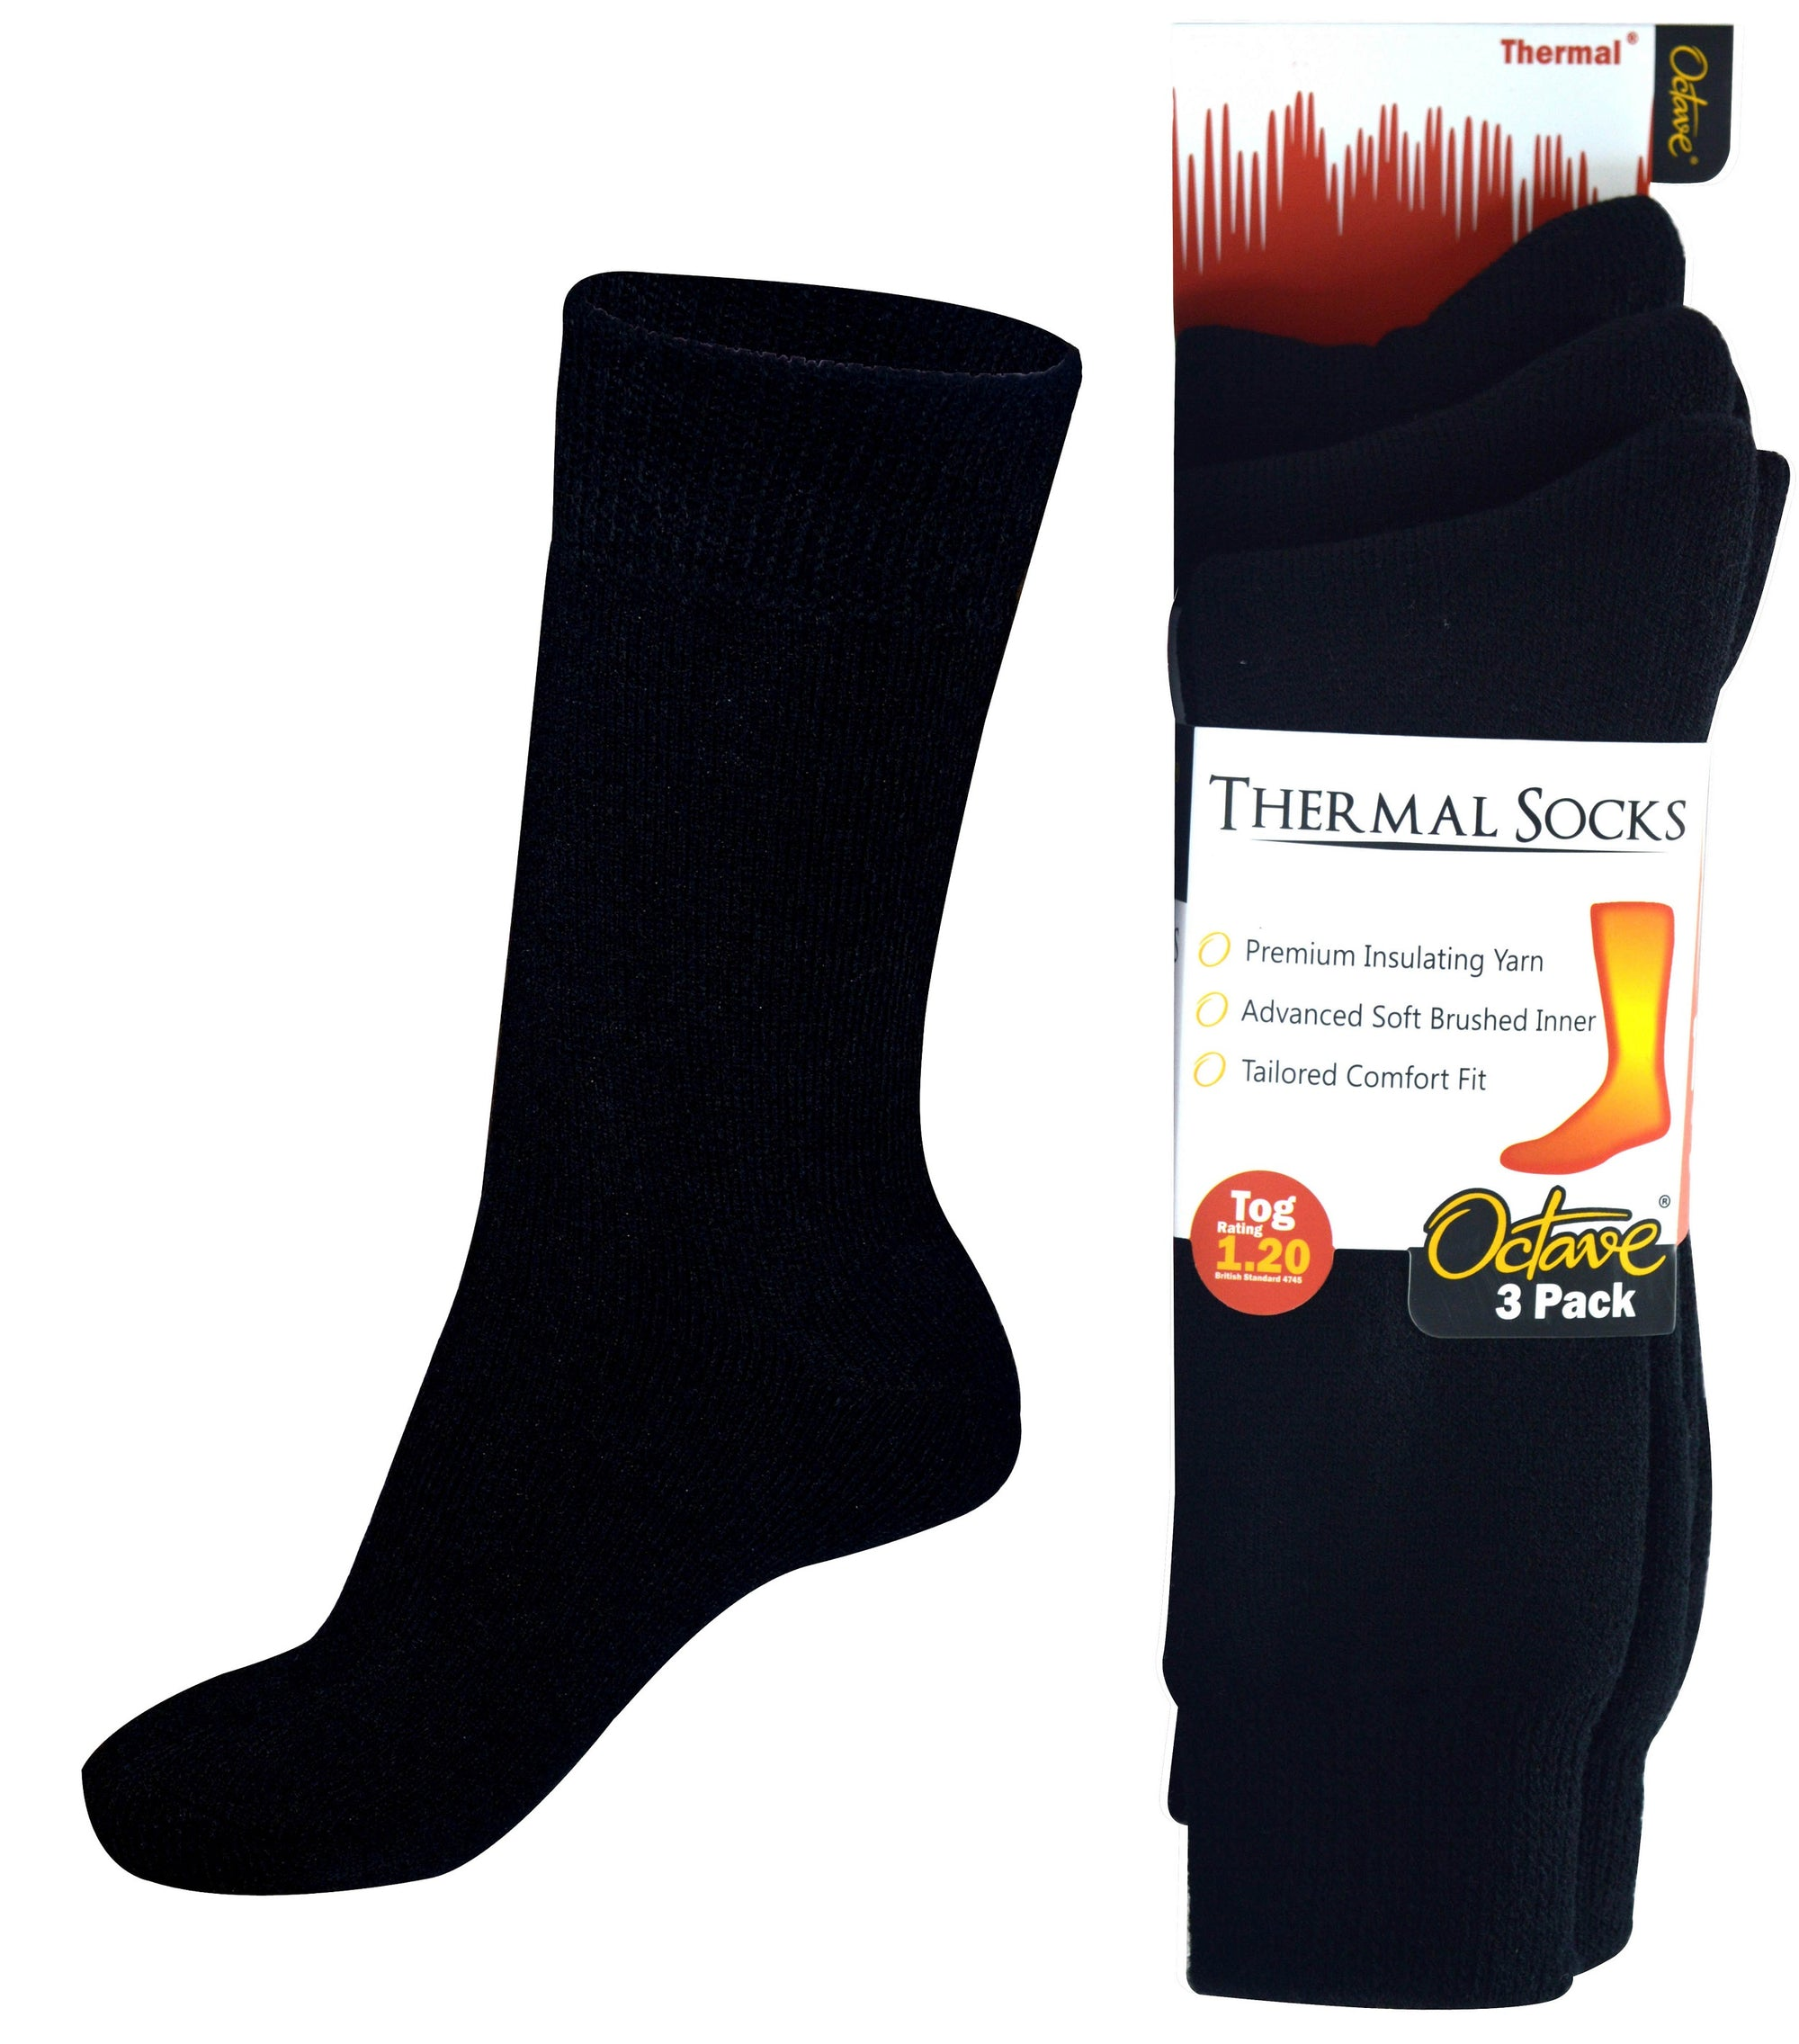 Octave® Mens Thermal Socks 1.2 Tog 3 Pack - Black